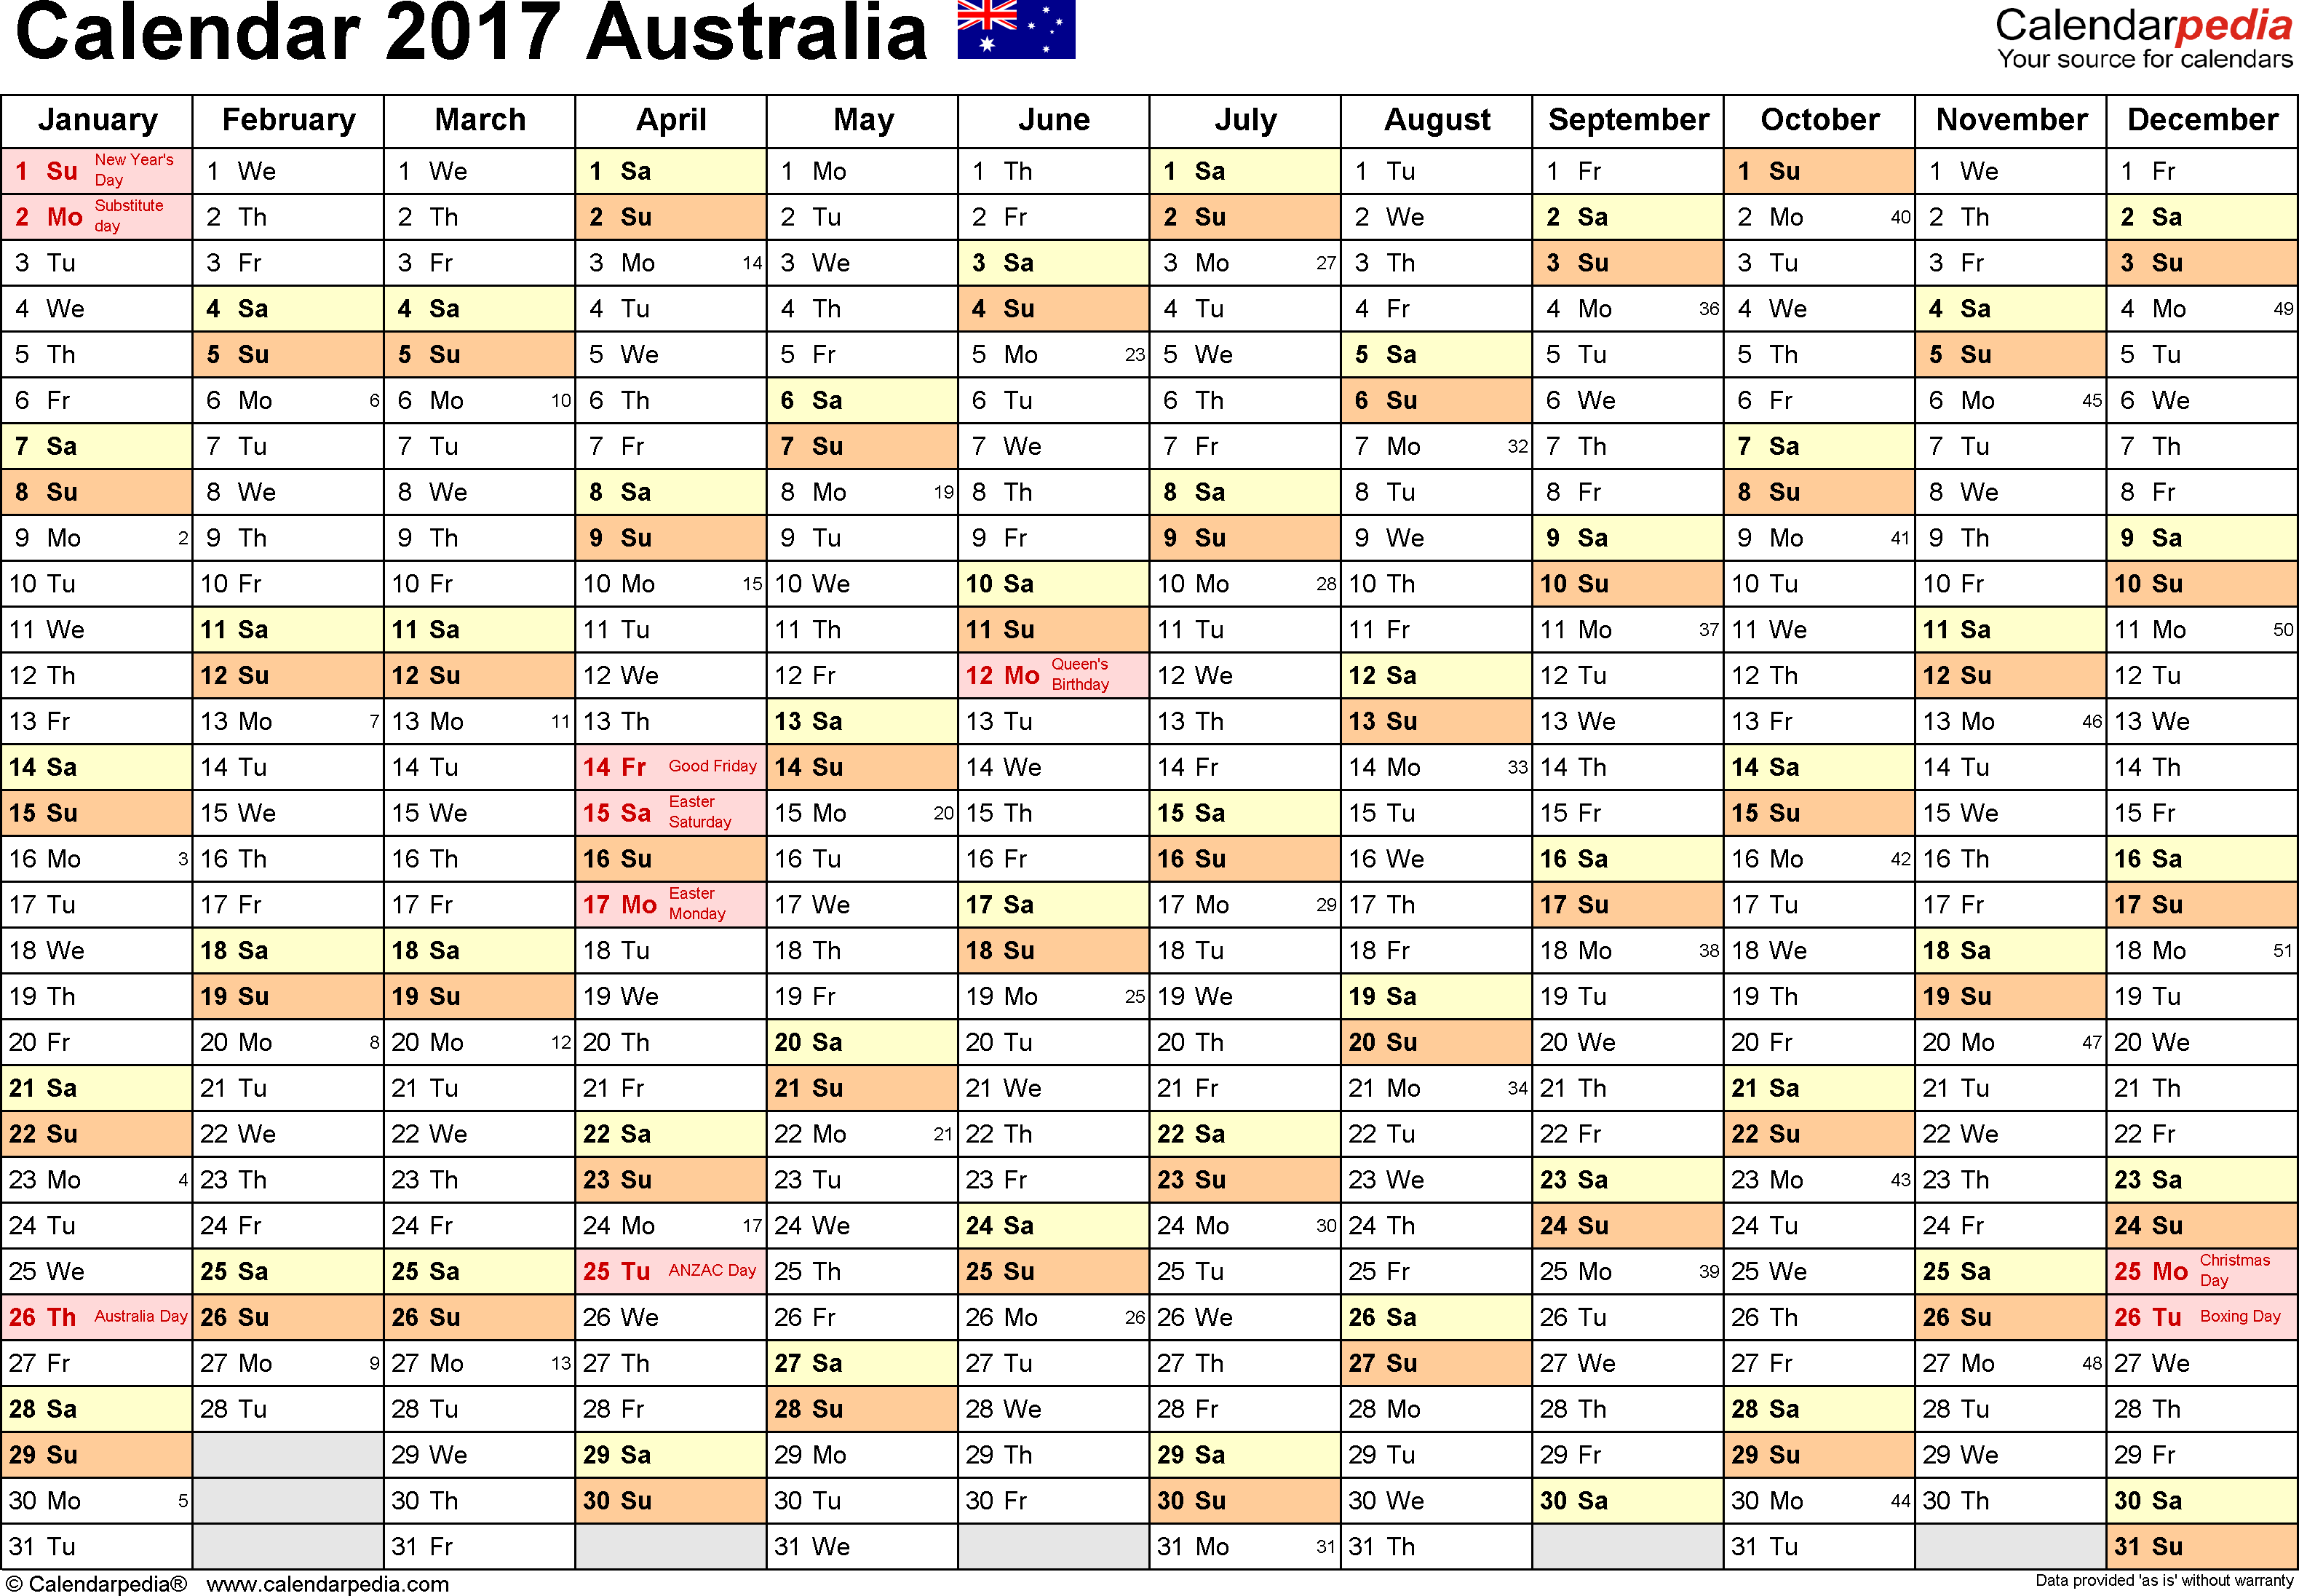 Template 2: 2017 Calendar Australia for Word, months horizontally, 1 page, landscape orientation